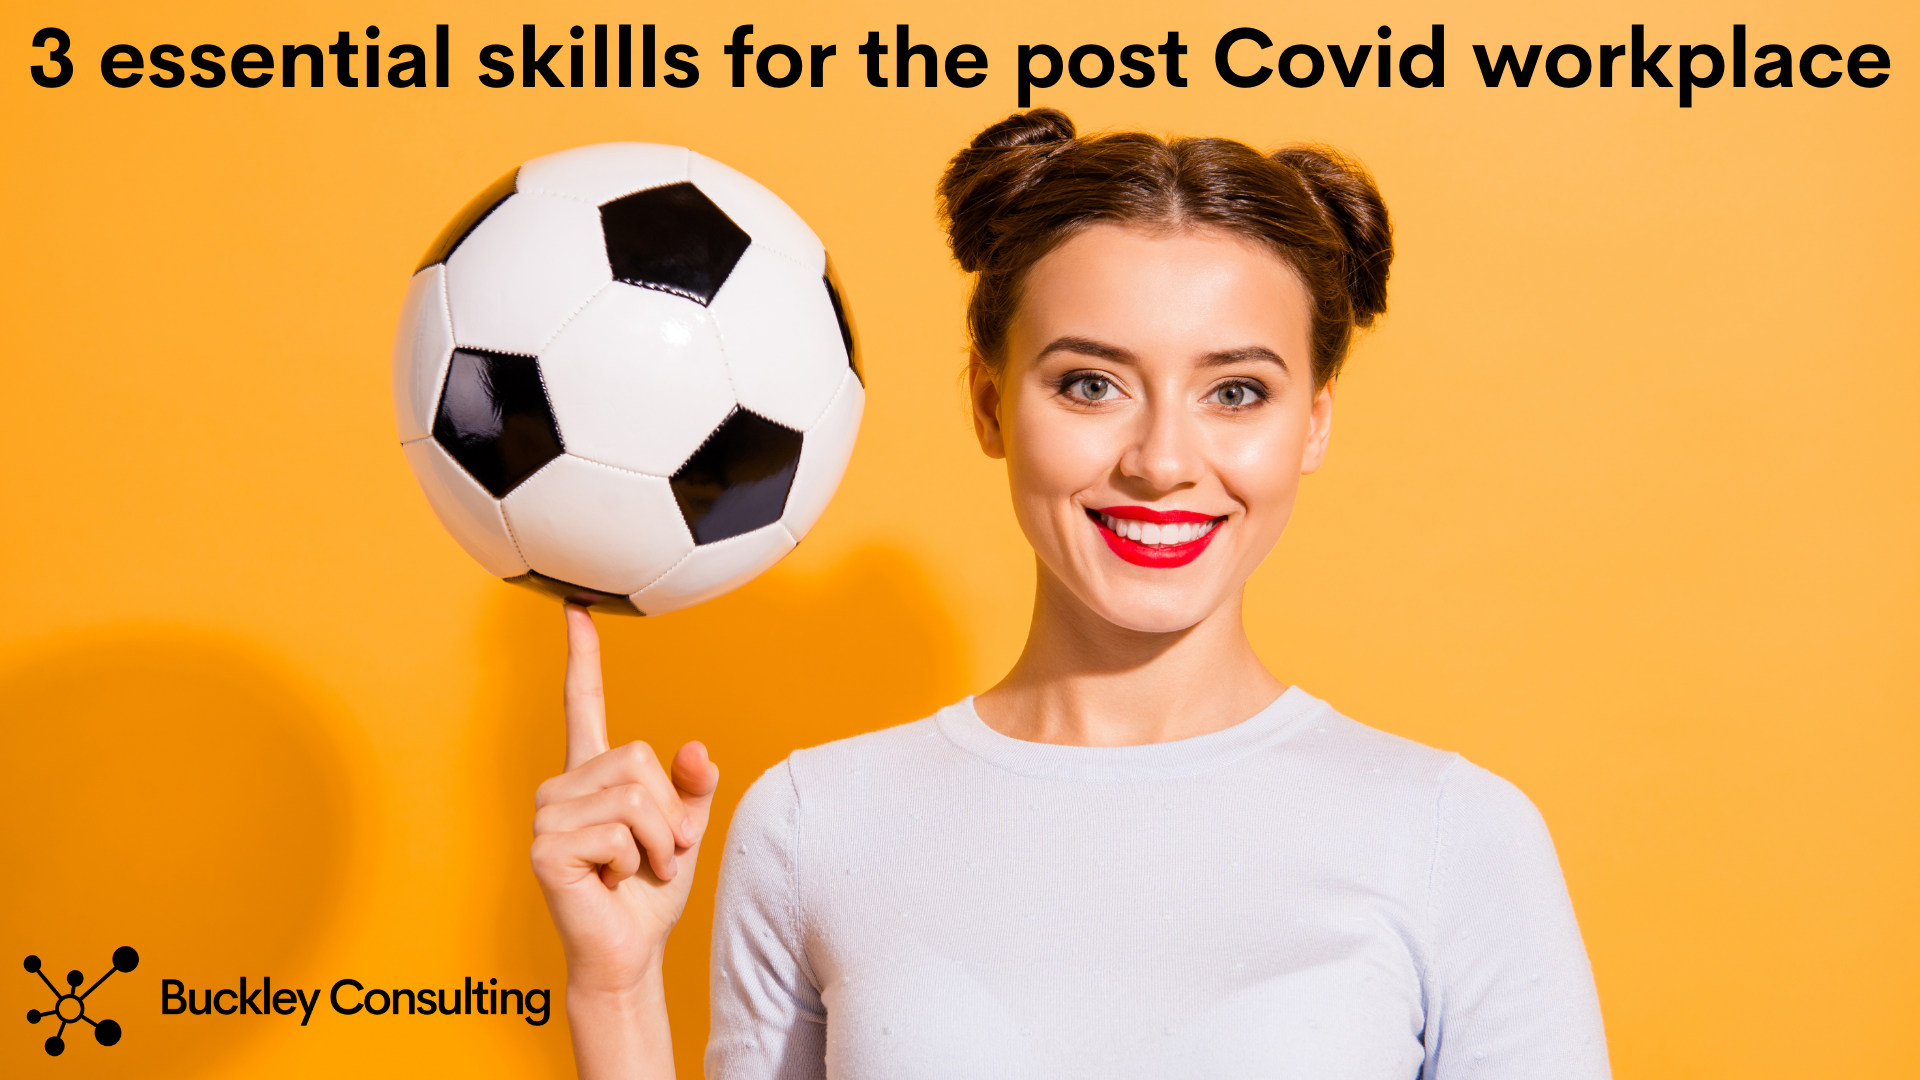 3 essential skills for the post Covid workplace